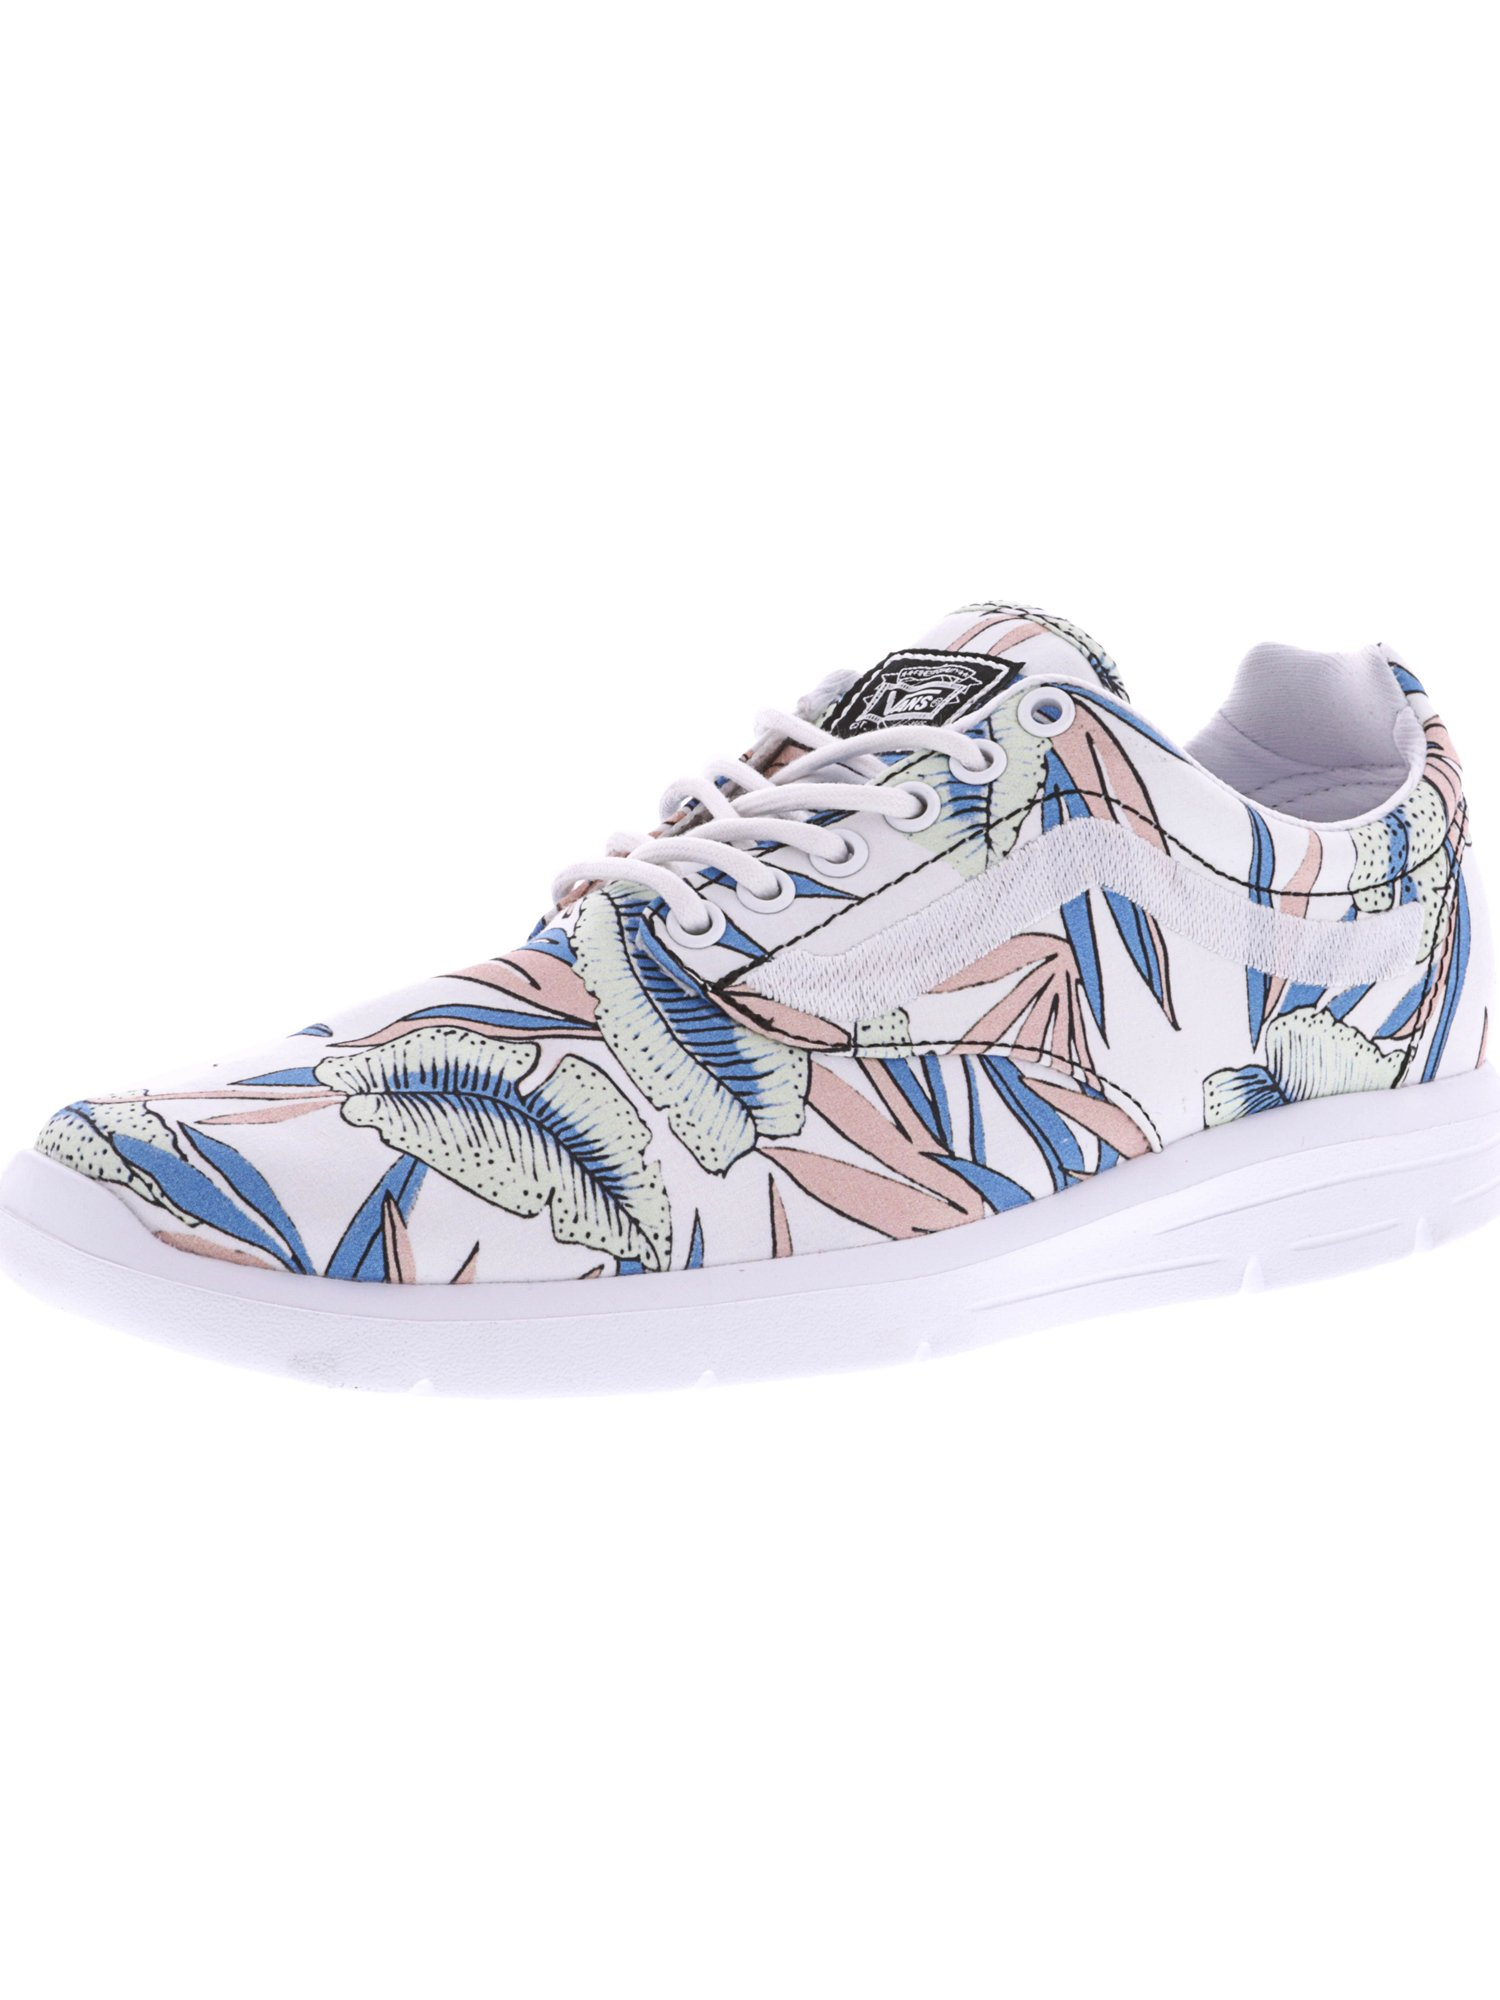 dfba2f9144 Vans Iso 1.5 Tropical Leaves True White   Ankle-High Canvas ...